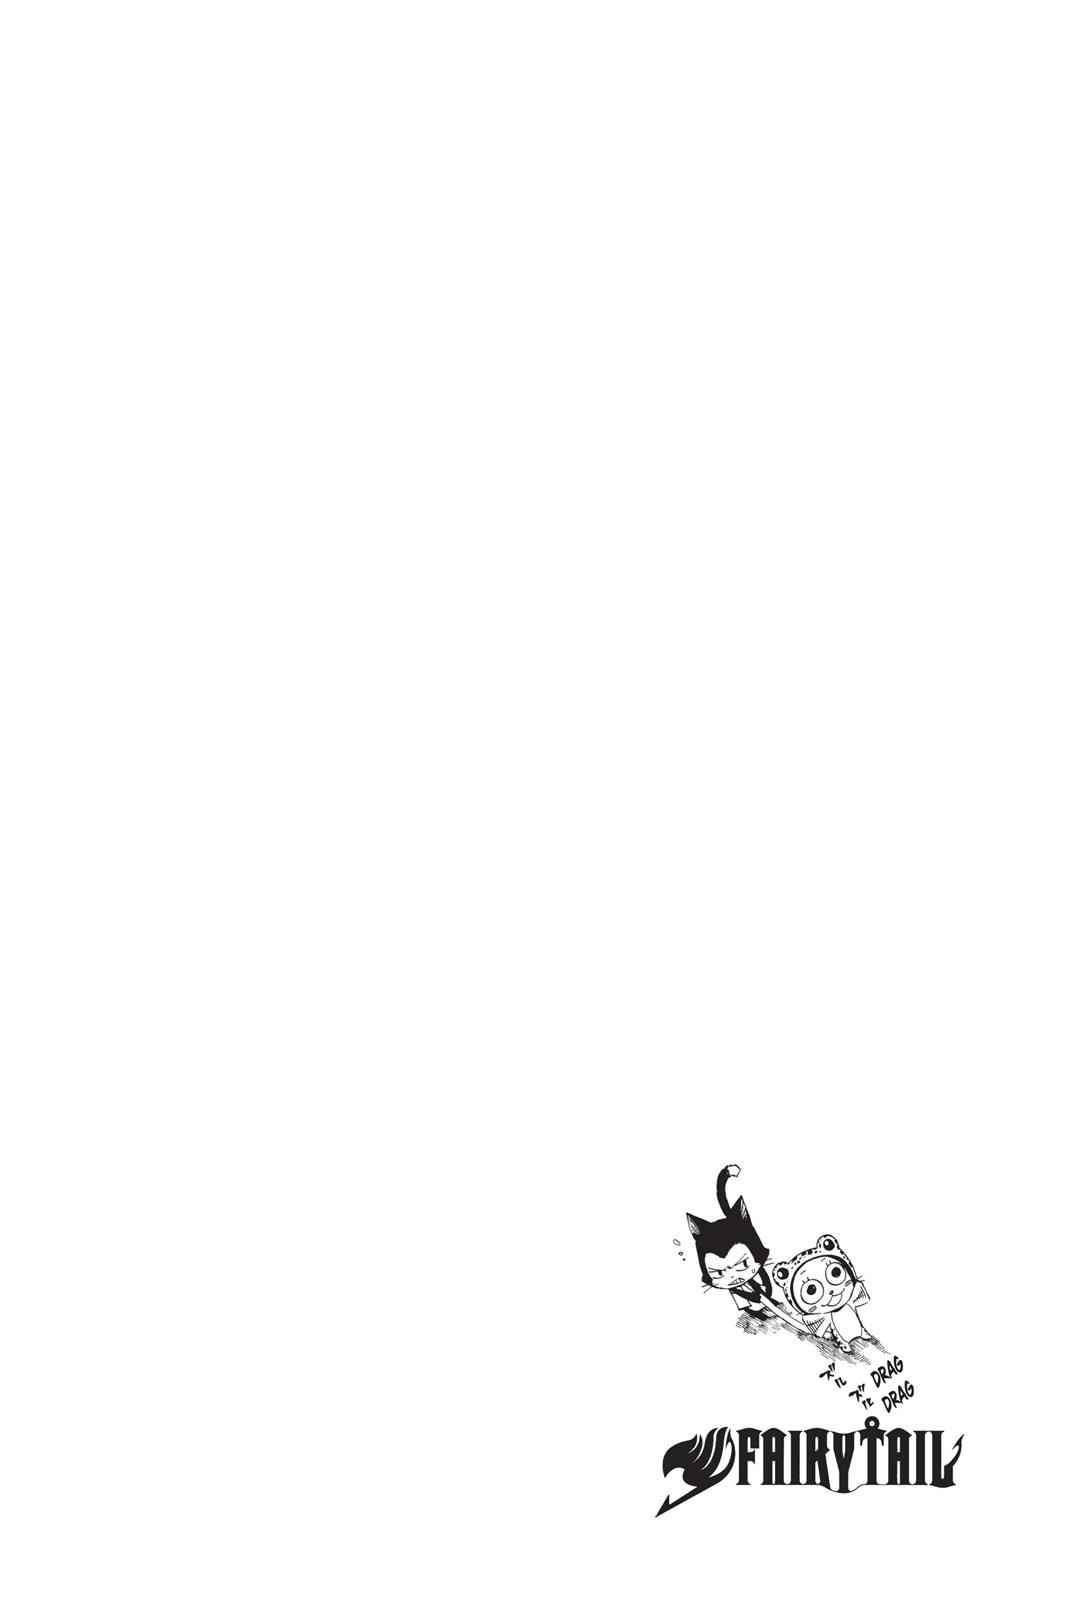 Chapter 390 image 030